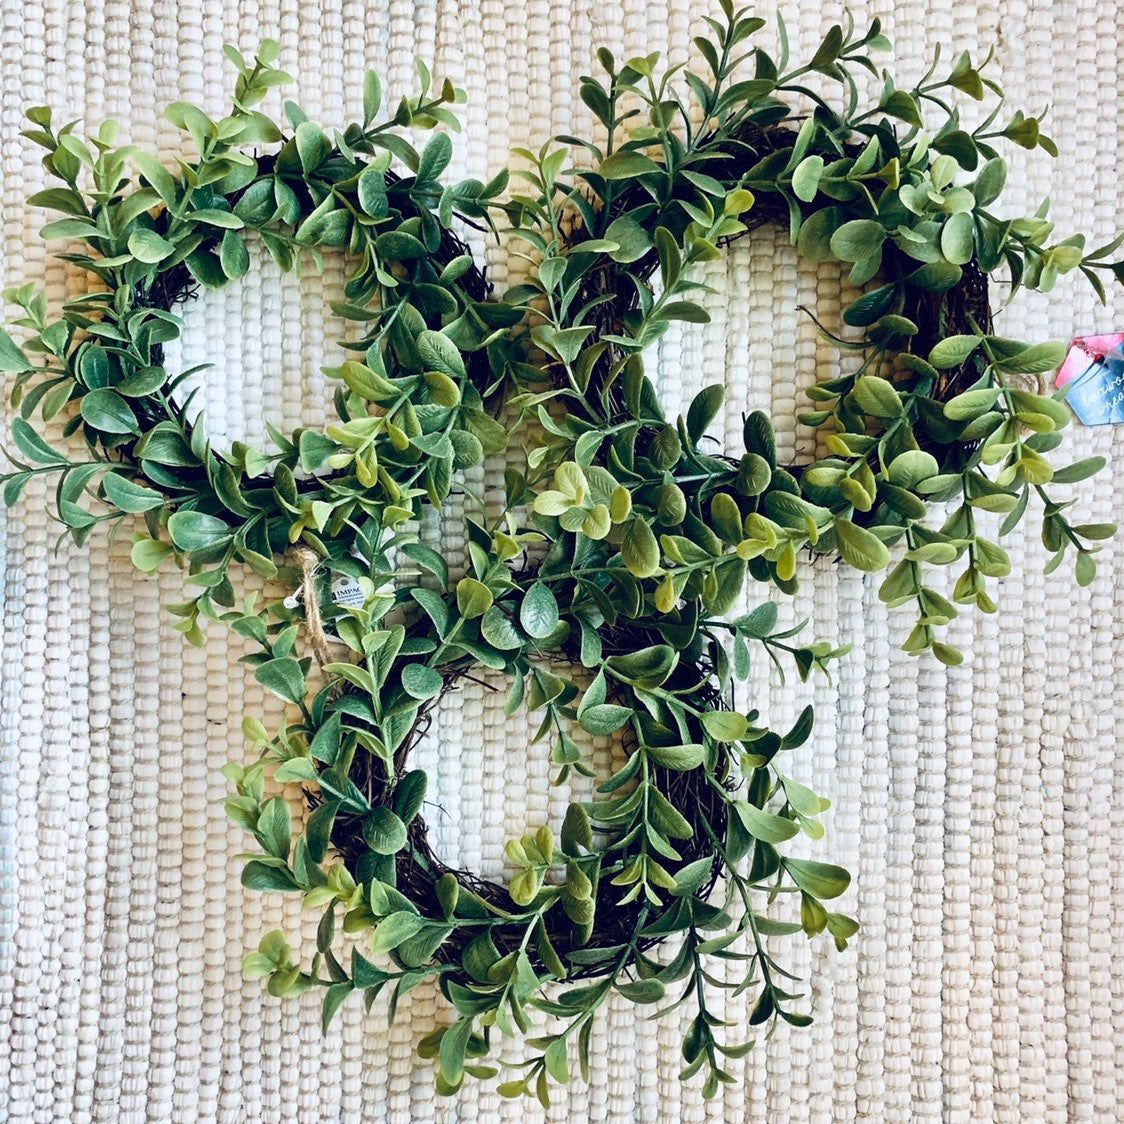 3 Mini Wreaths That Are So Good For Year Round Decor Displays Around The House This Is Such A Great Size To Display Mini Wreaths Decor Display Round Decor